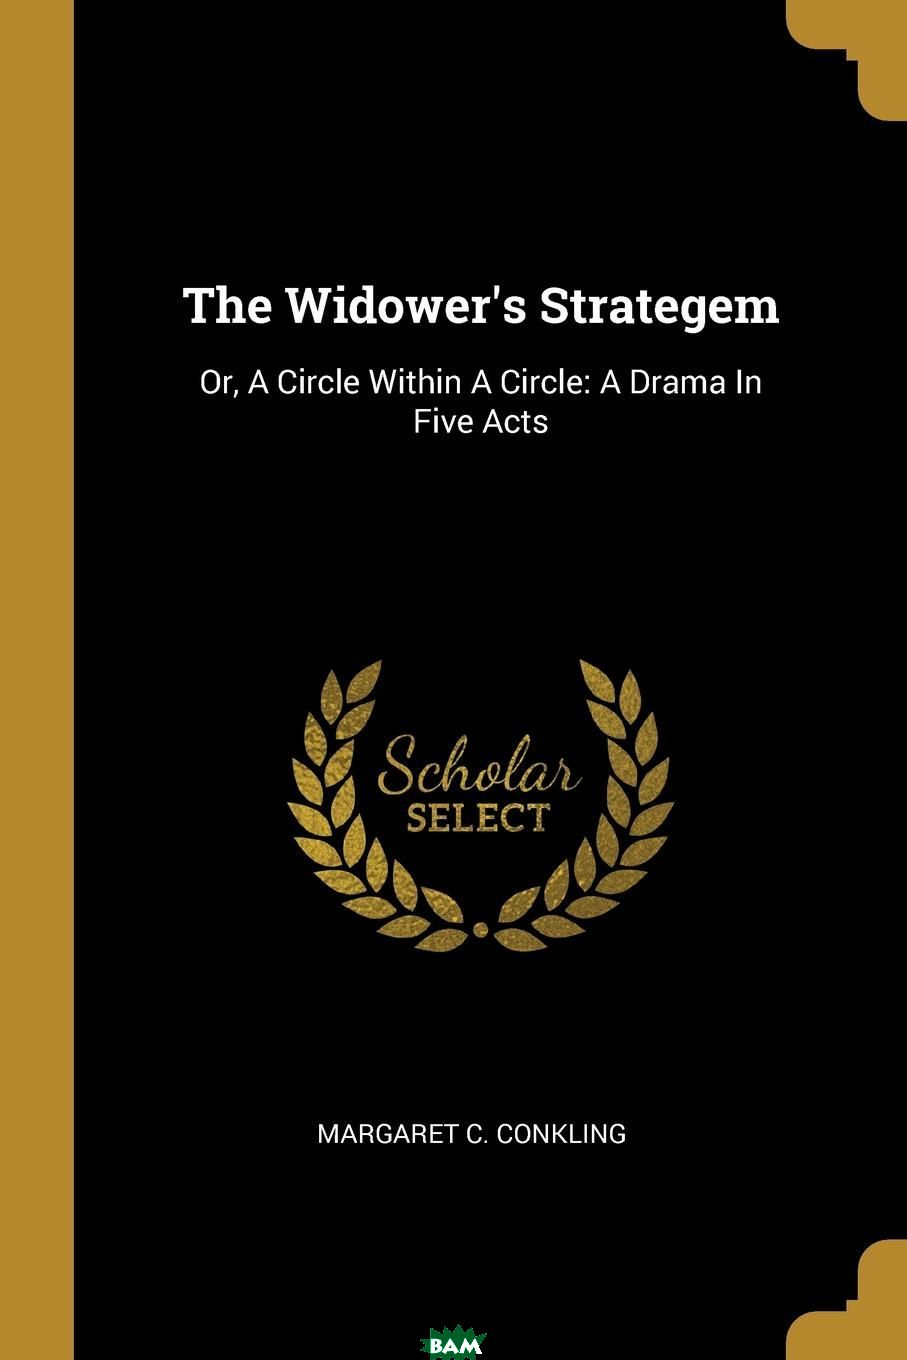 Купить The Widower.s Strategem. Or, A Circle Within A Circle: A Drama In Five Acts, Margaret C. Conkling, 9781011291908